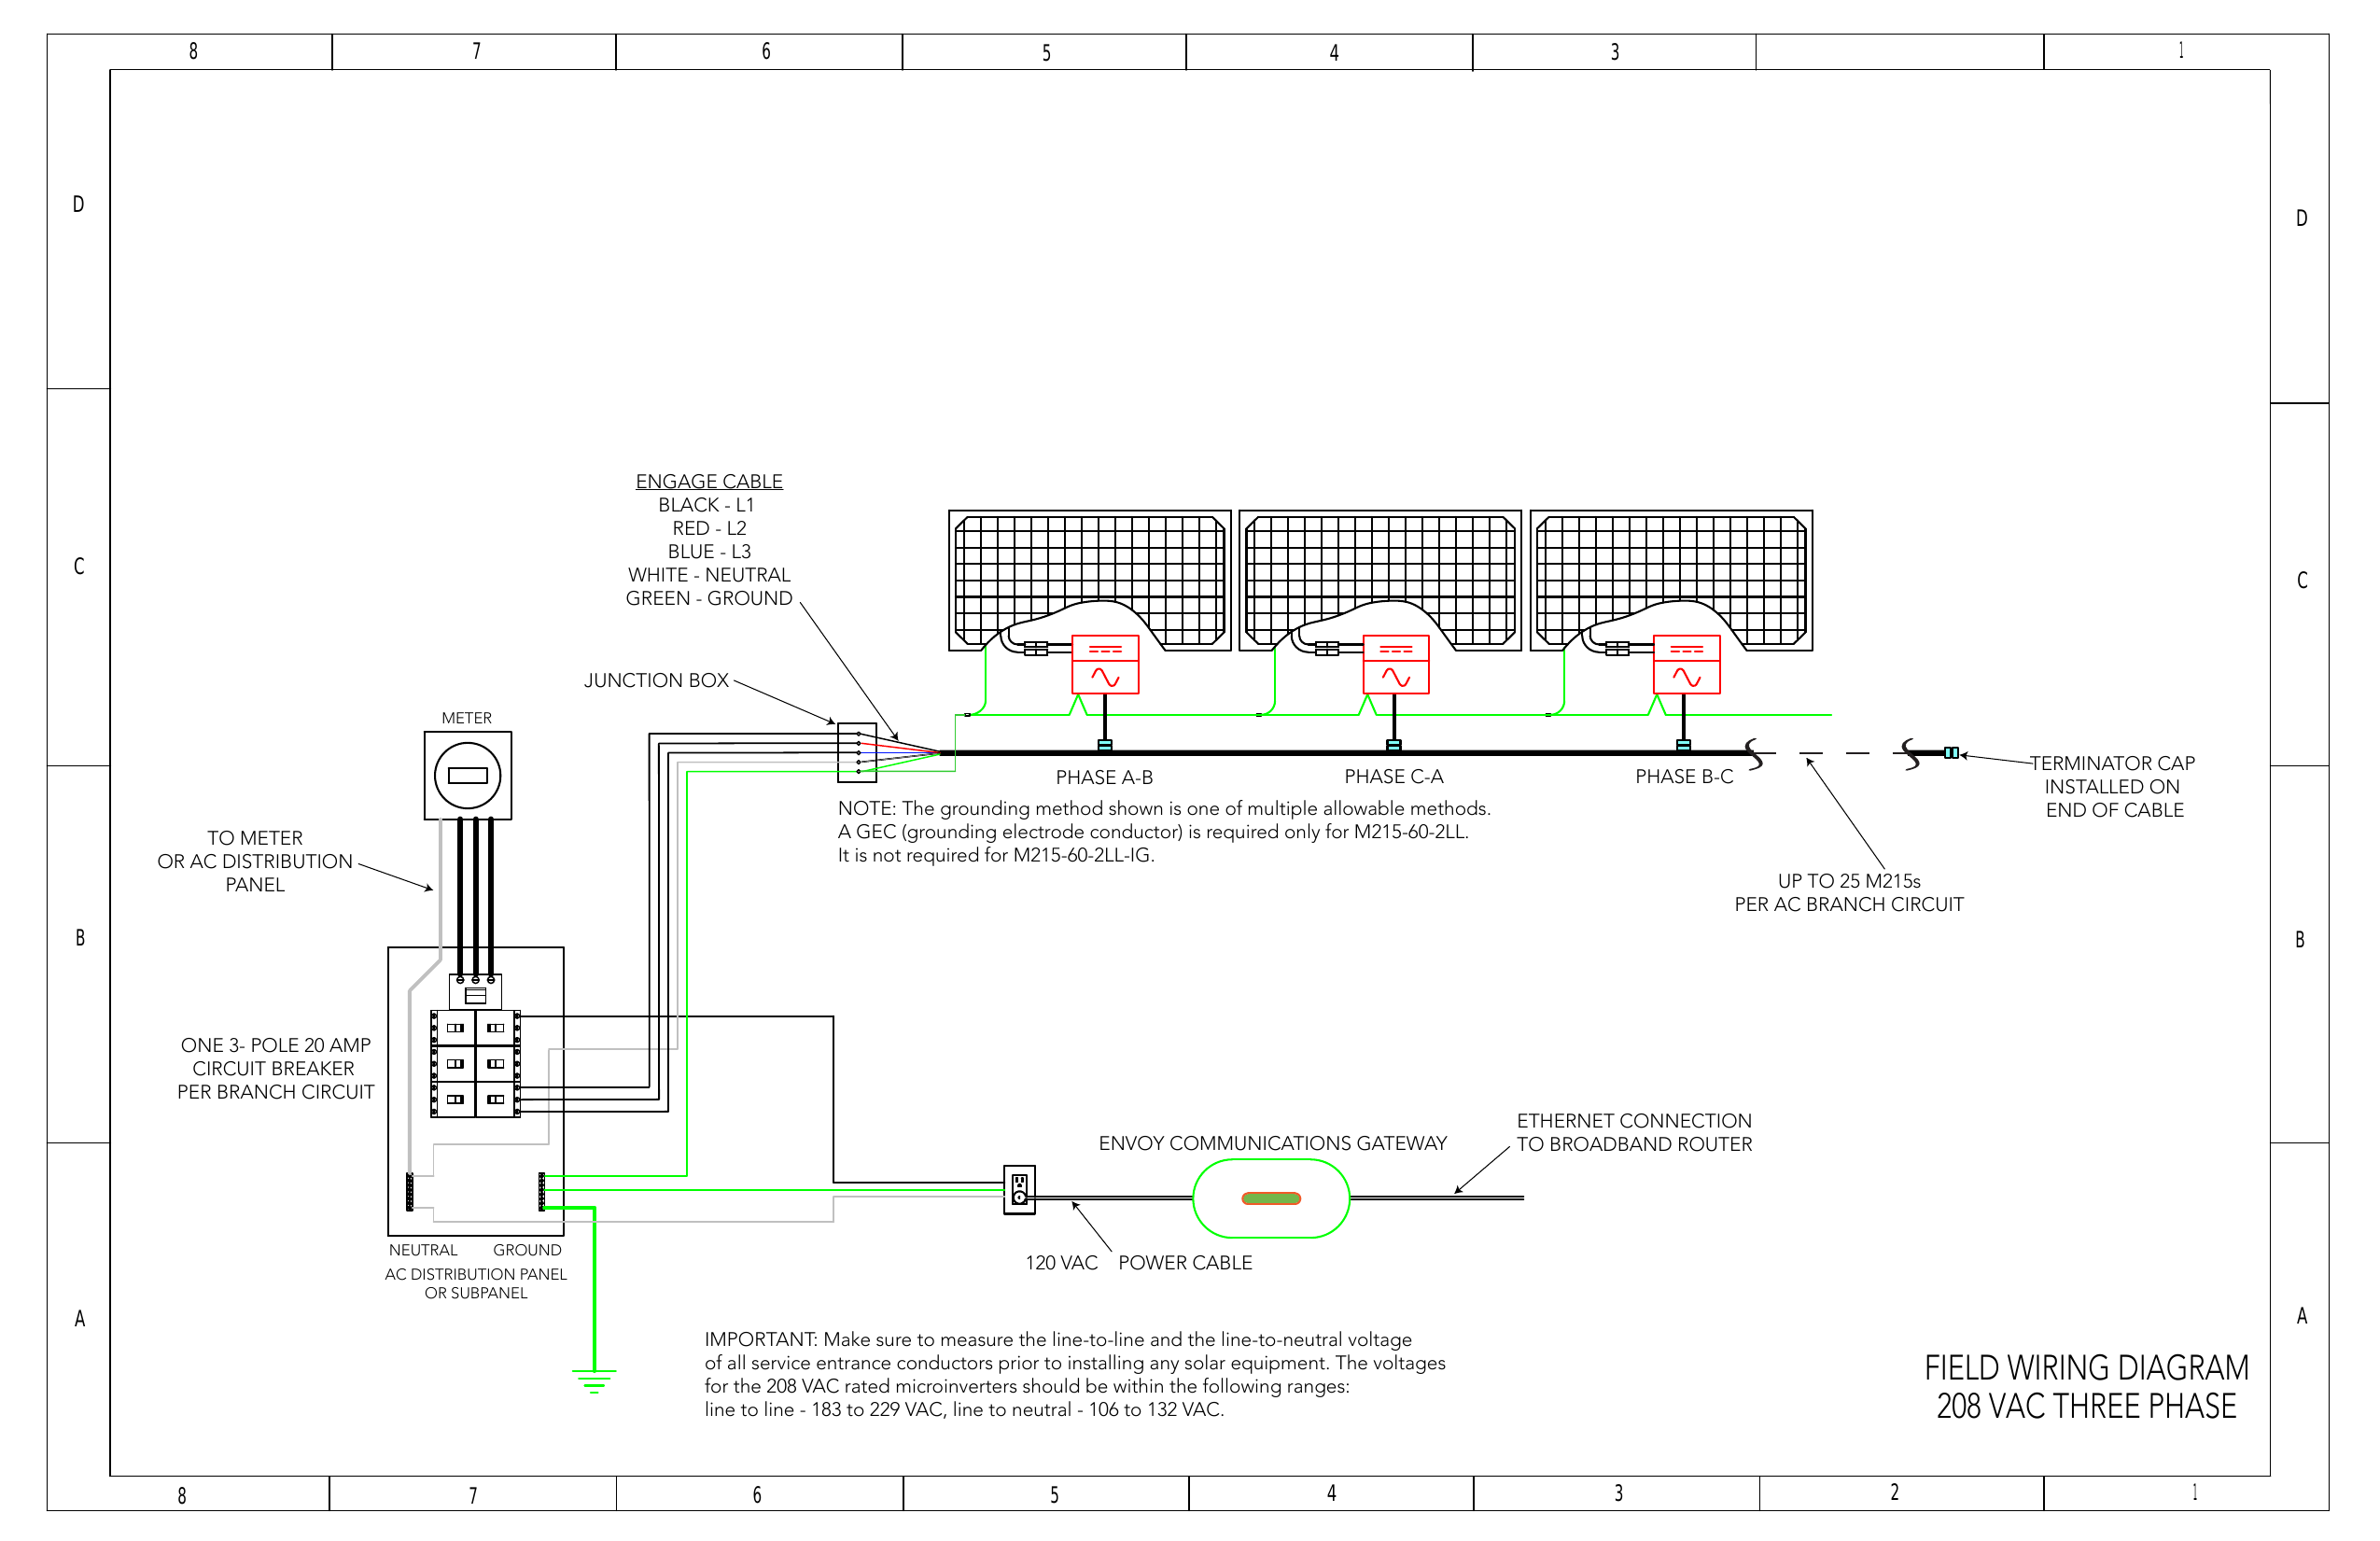 220 3 Phase Field Wiring Diagram